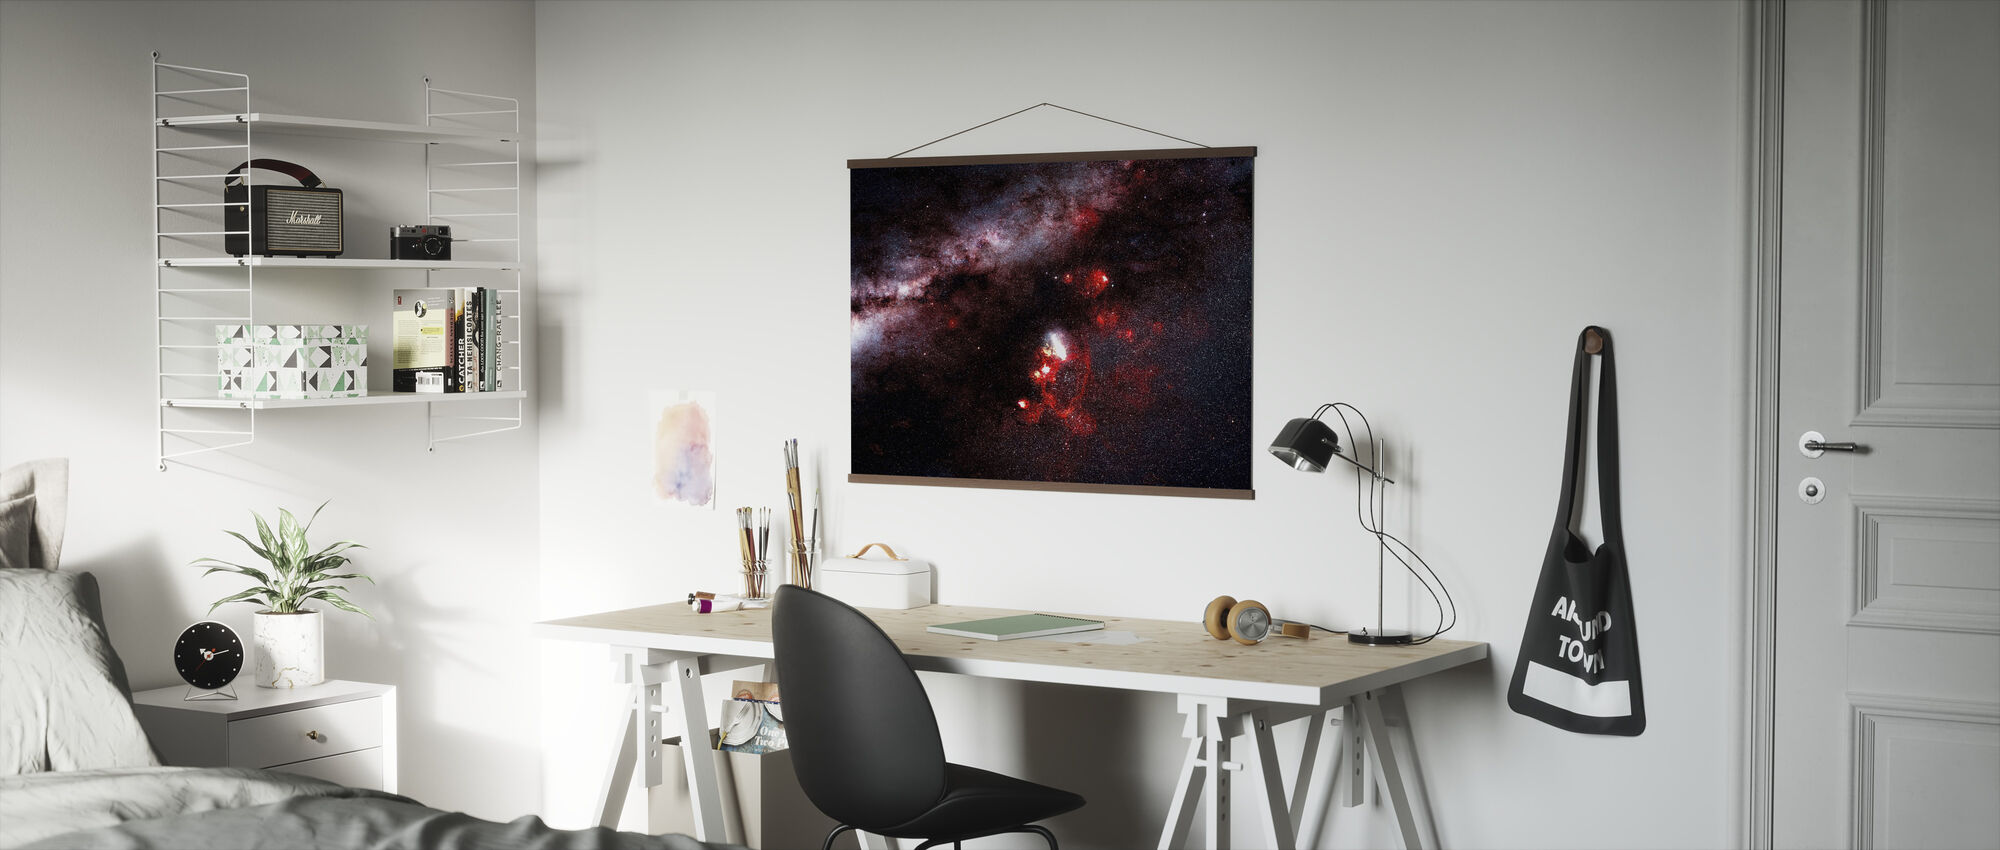 Darkness in the Galaxy - Poster - Office